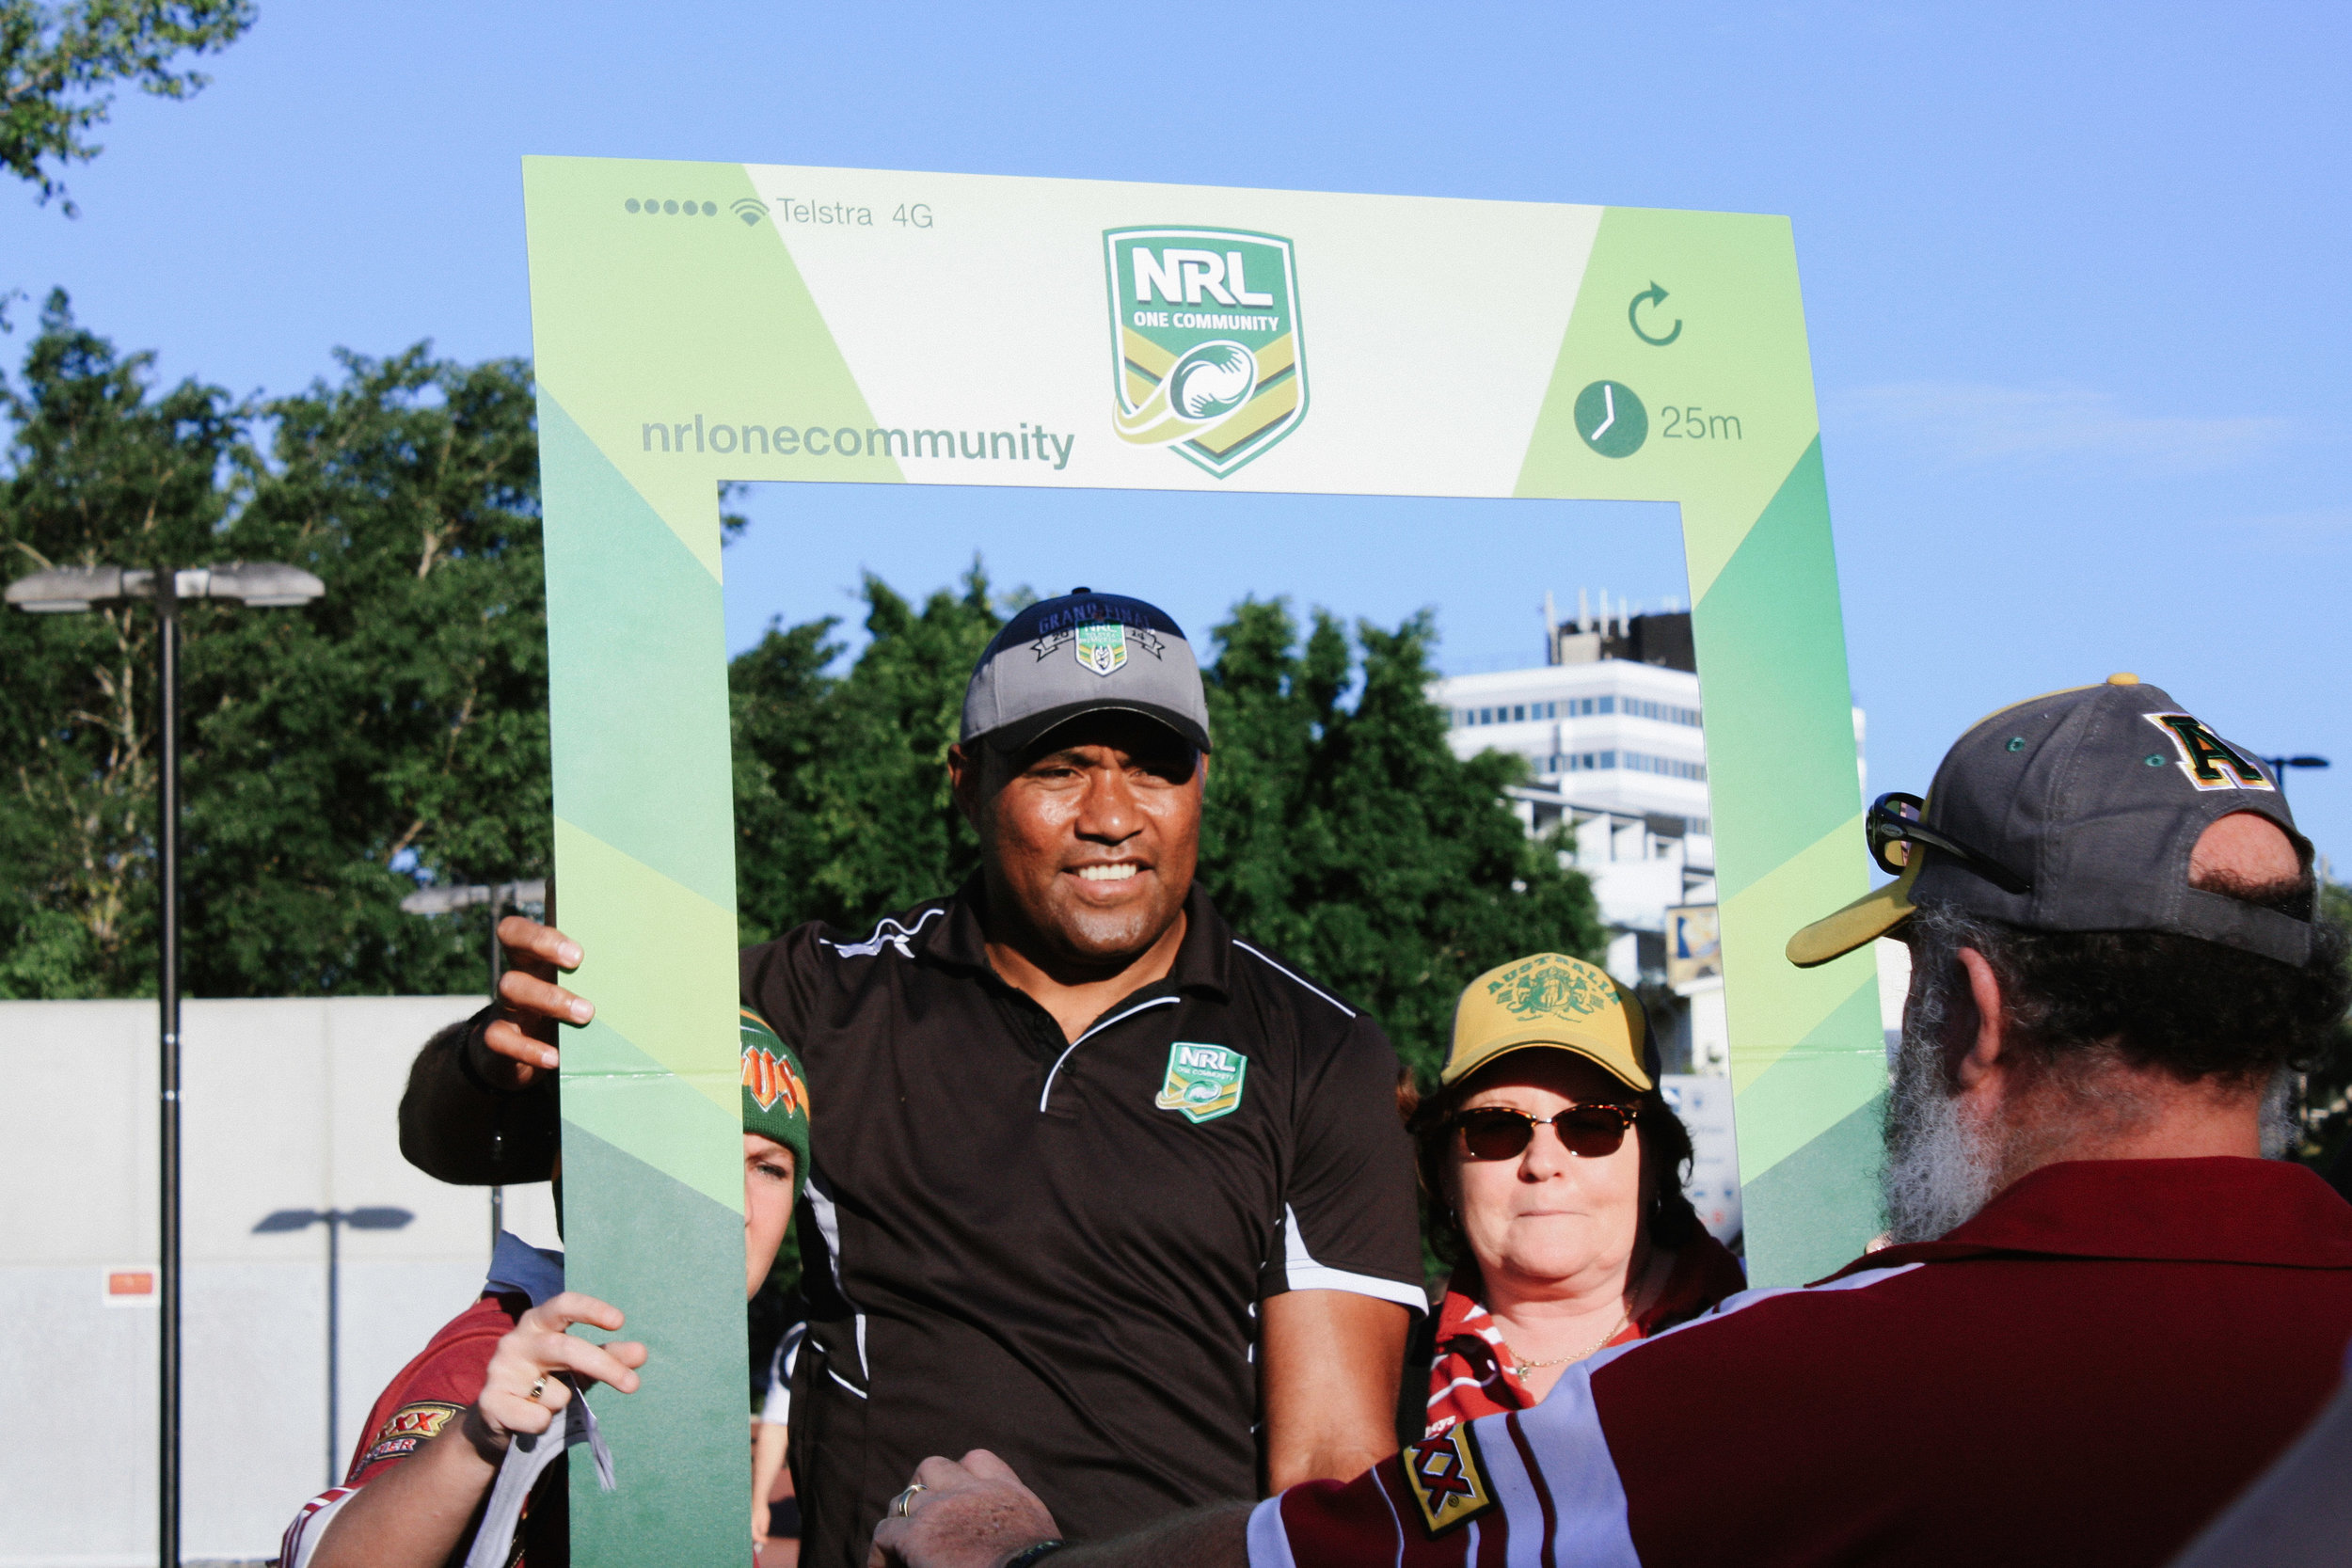 Lesly Lotha_Newzulu Australia_Four Nations_Brisbane_2014 - 08